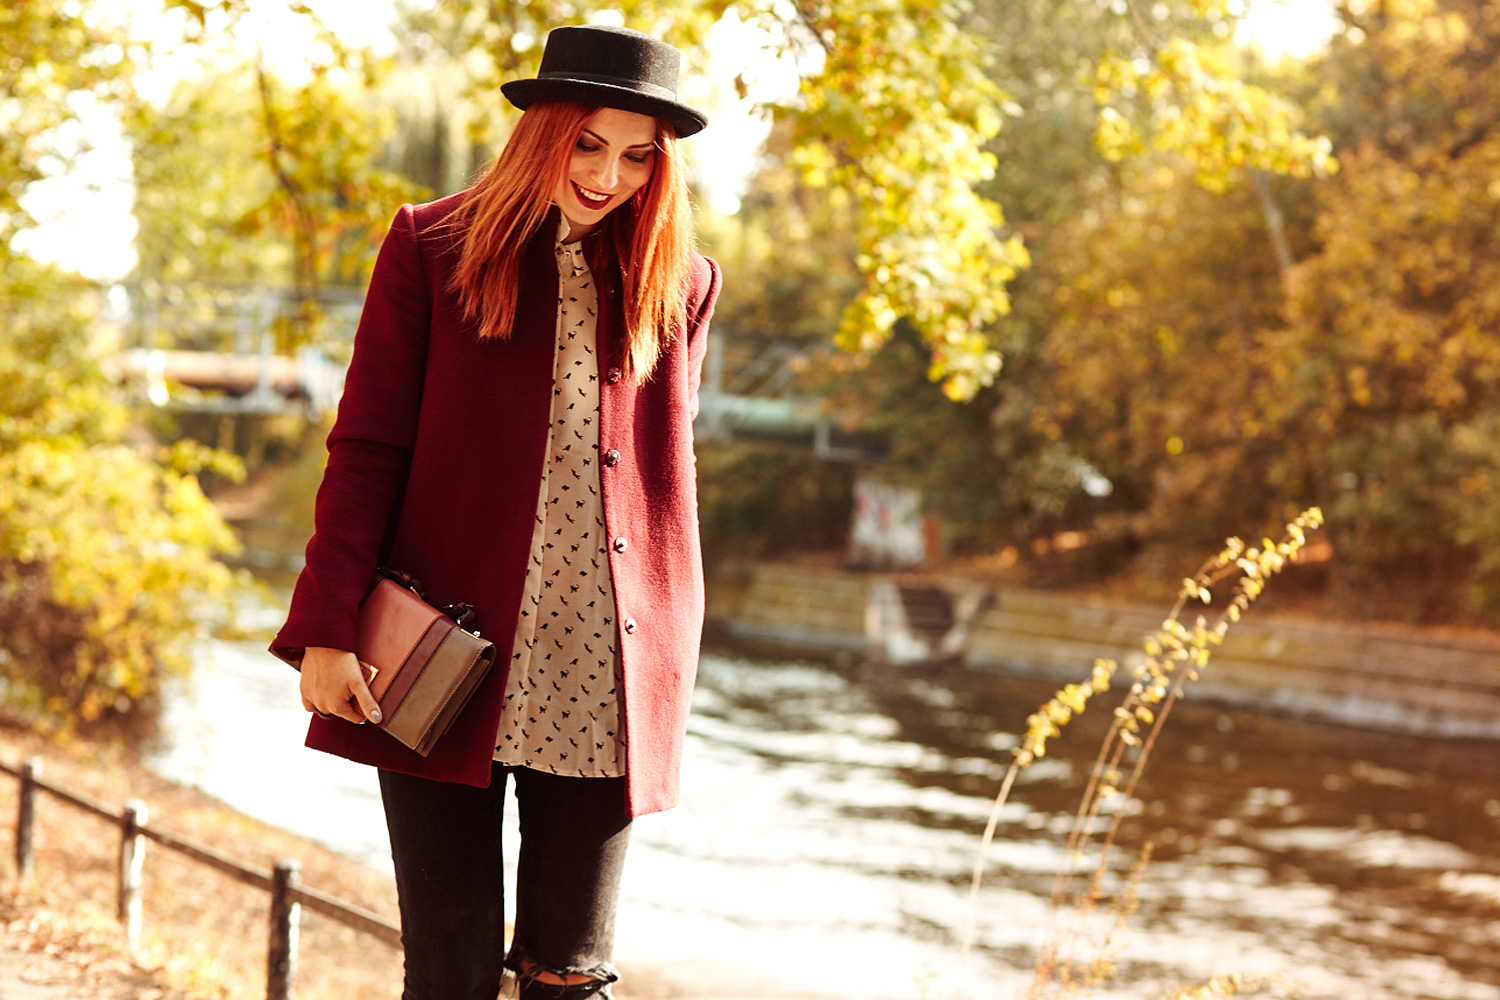 katzenprint supertrash herbst autumn burgundy grunge fashion blogger outfit style warm animal print cat katzen bluse mango valentino bag retro